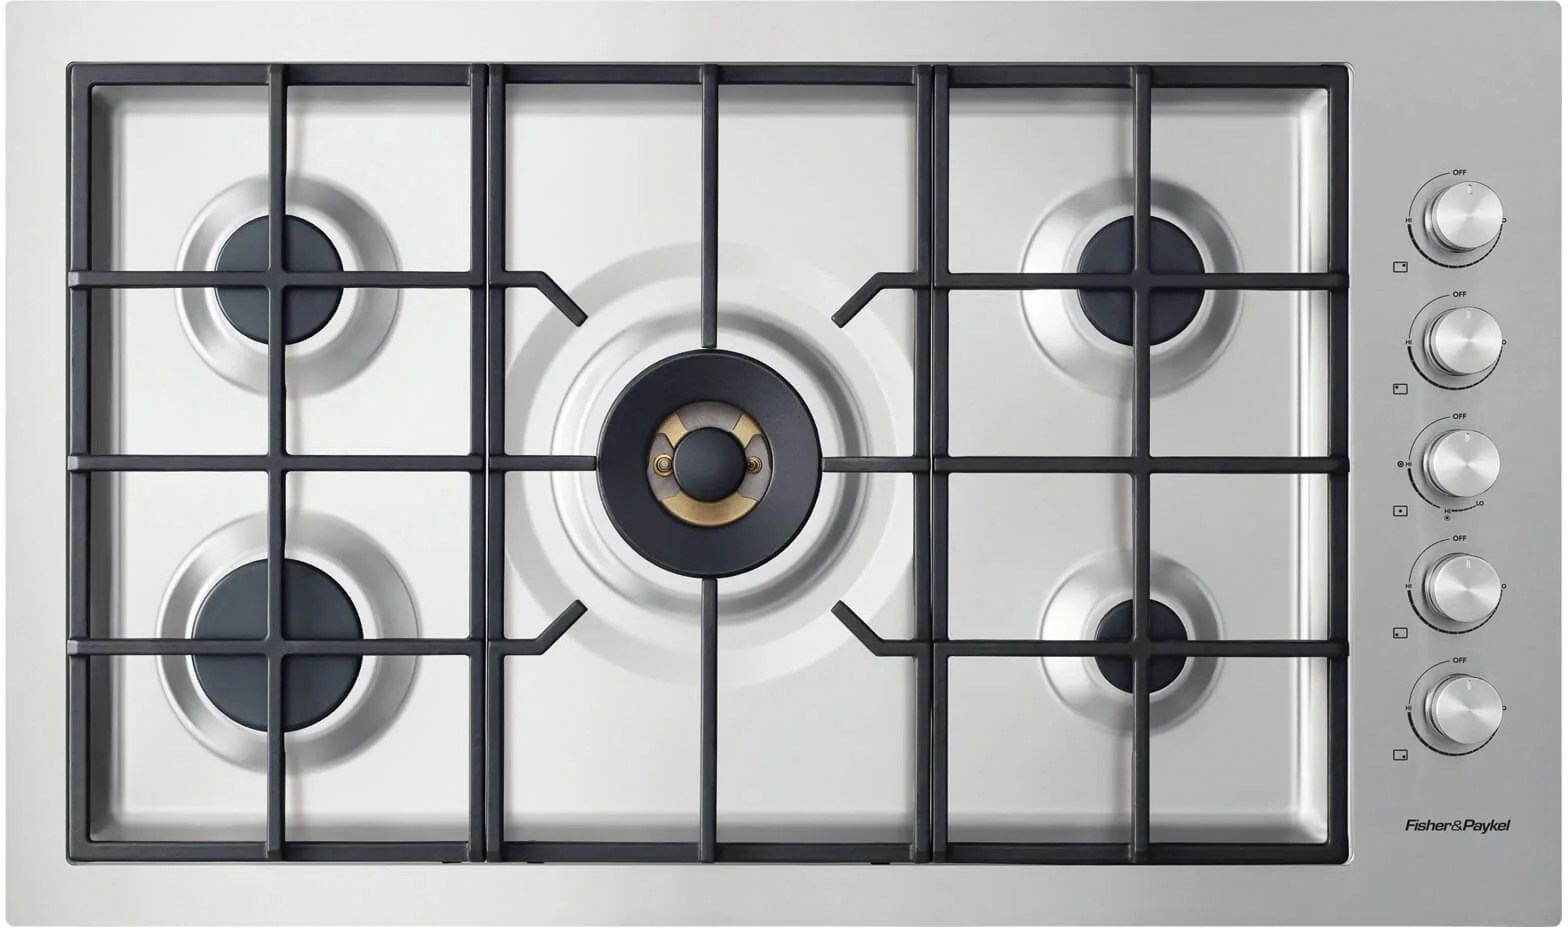 Gas Cooktop Installation Cost Fisher And Paykel Cg365dngrx2n 36 Inch Gas Cooktop With 5